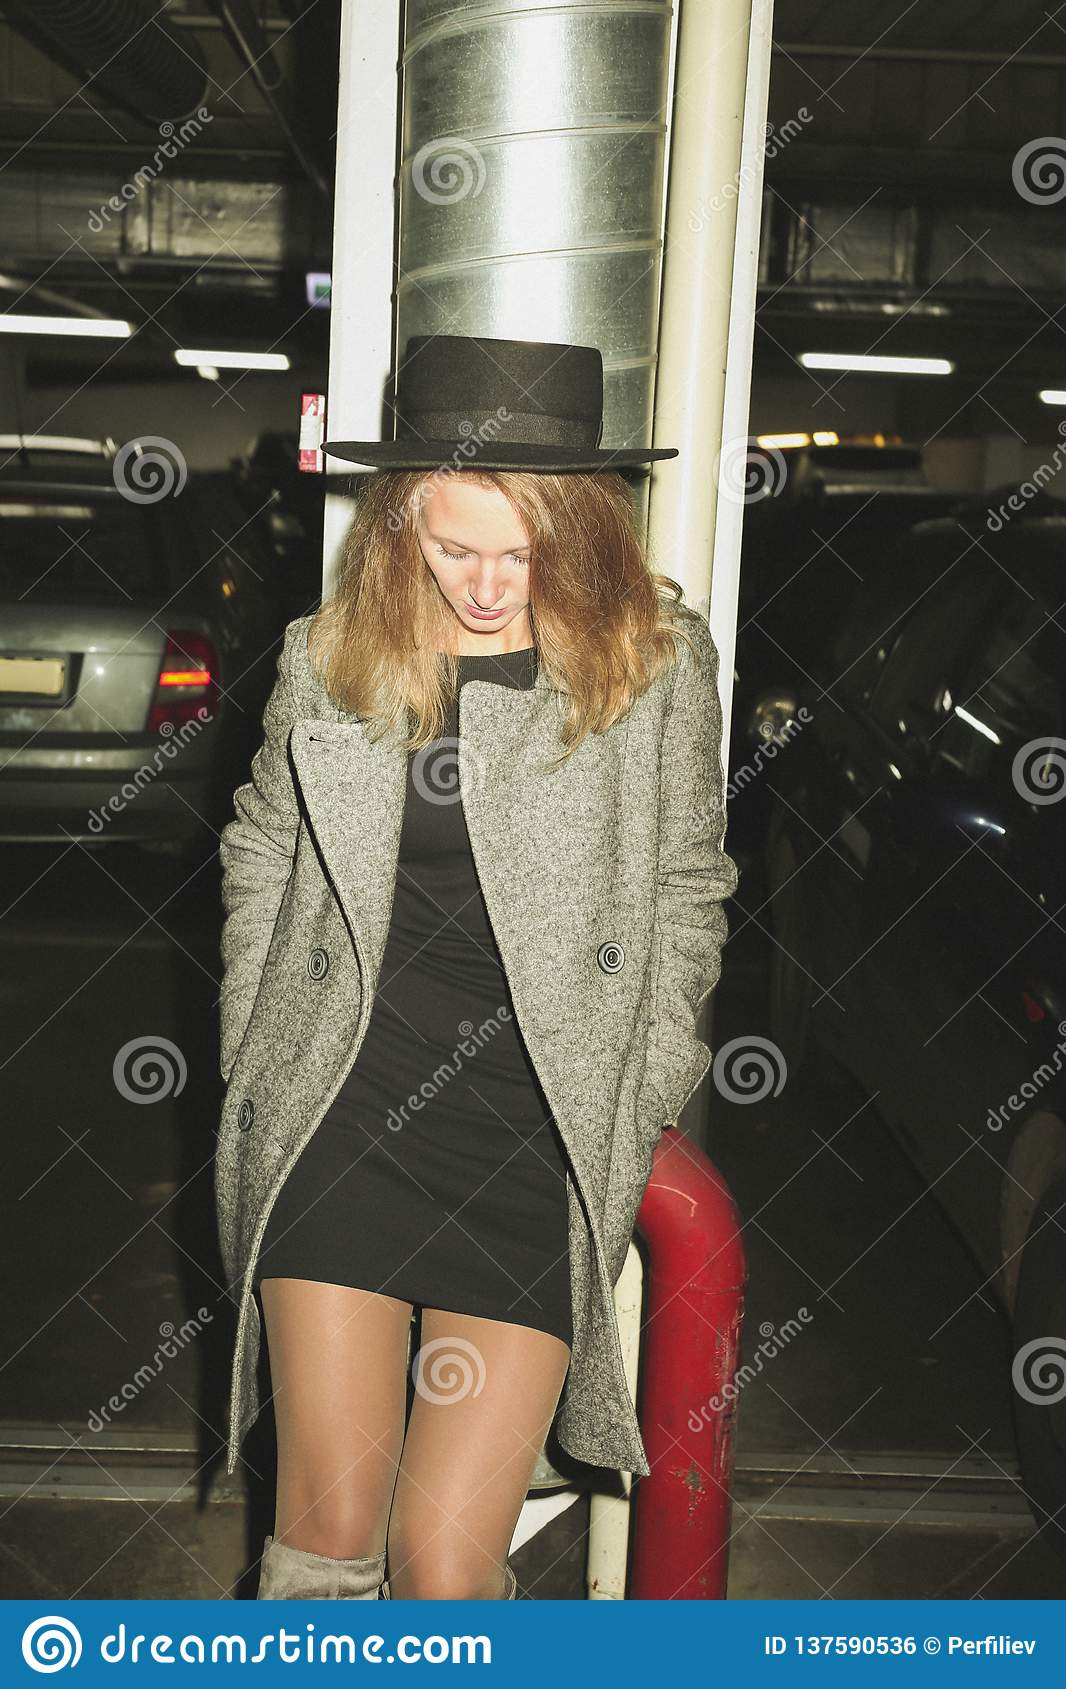 Fashionable woman on parking lot